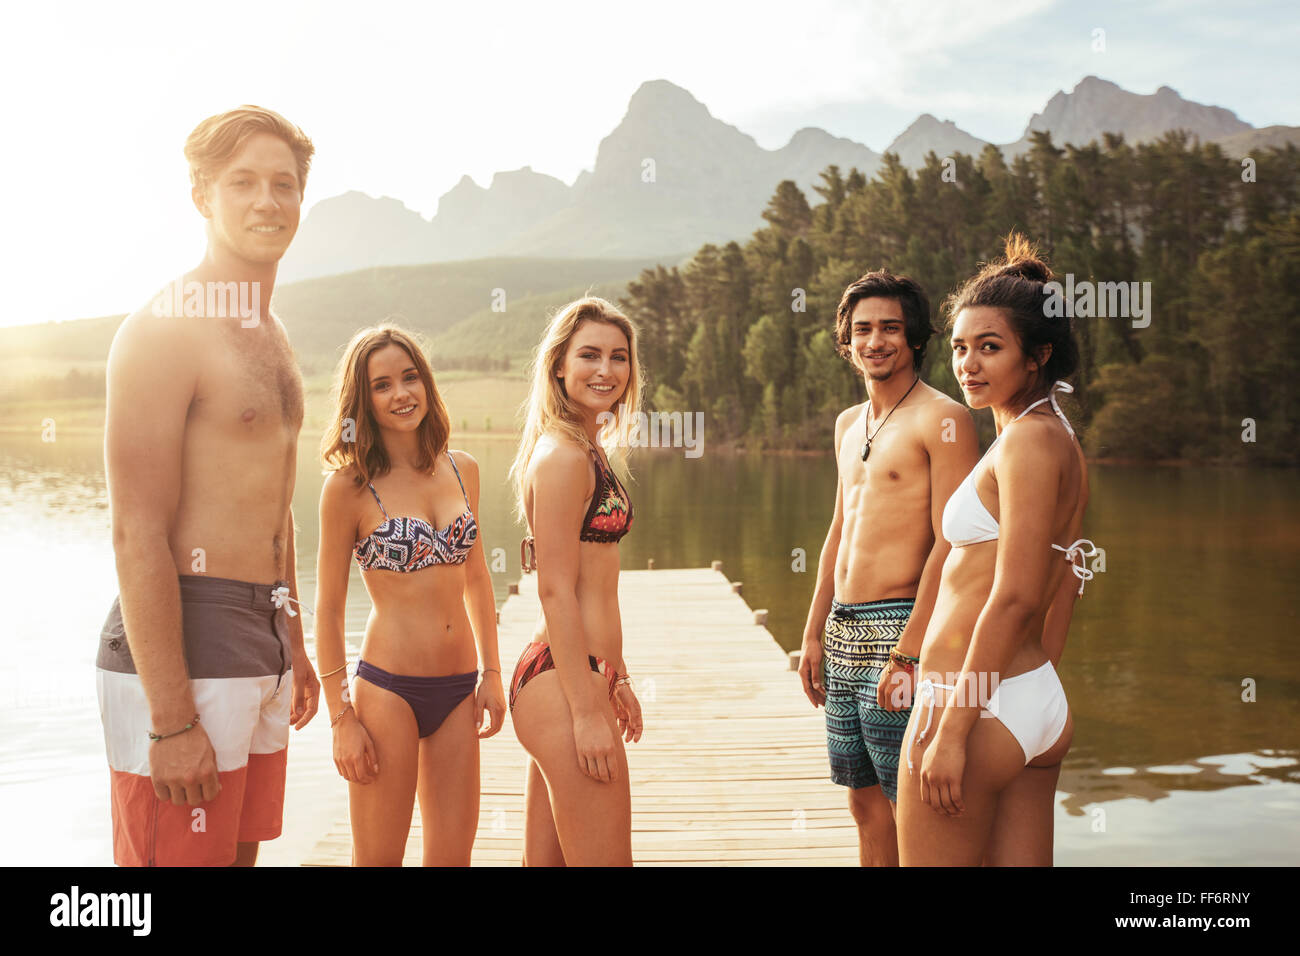 men wearing women's bikini